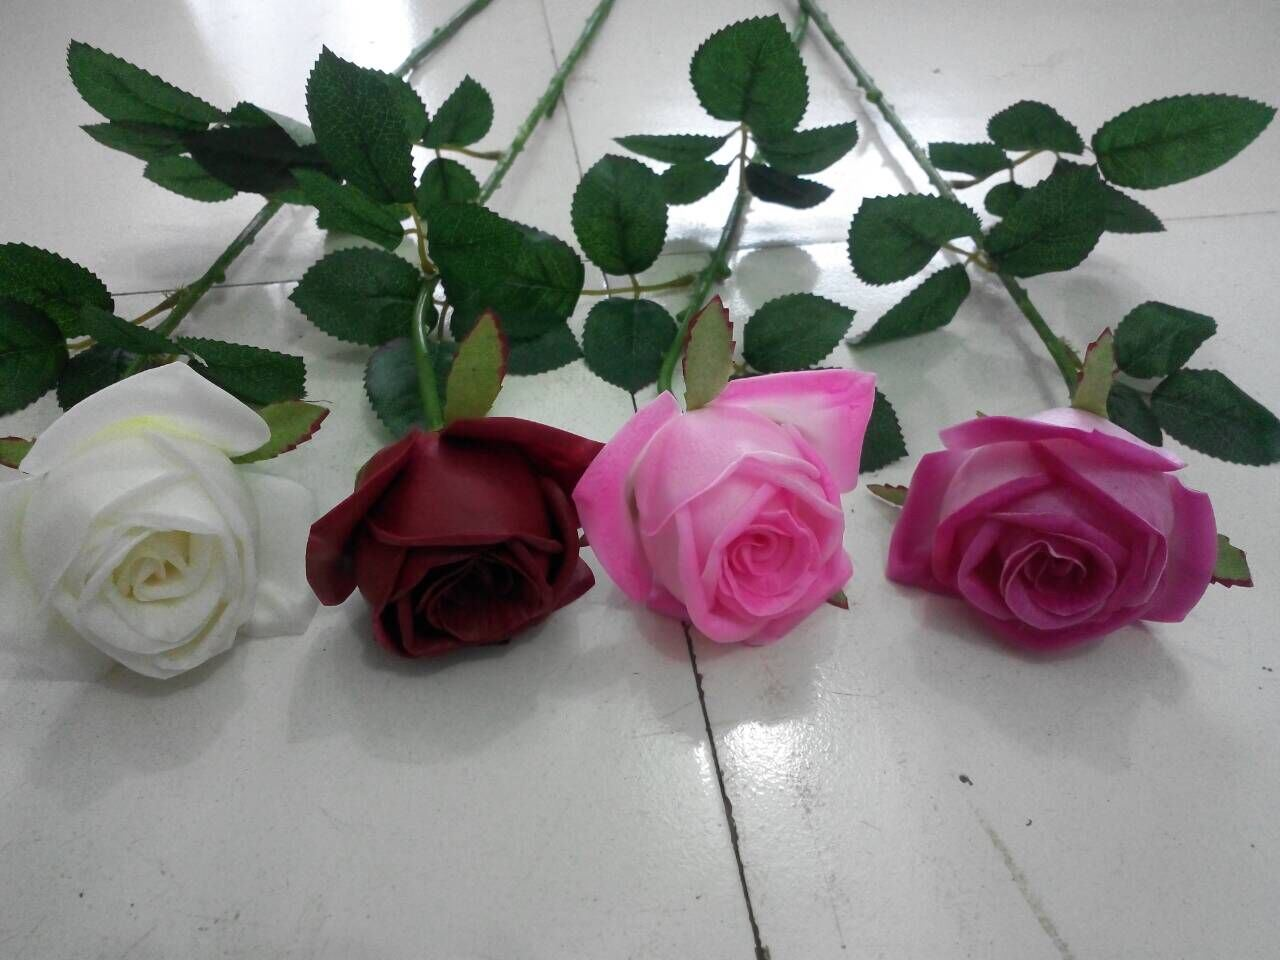 China best selling flowers of cally lily flower gu hy427220644 best selling flowers of cally lily flower gu hy427220644 izmirmasajfo